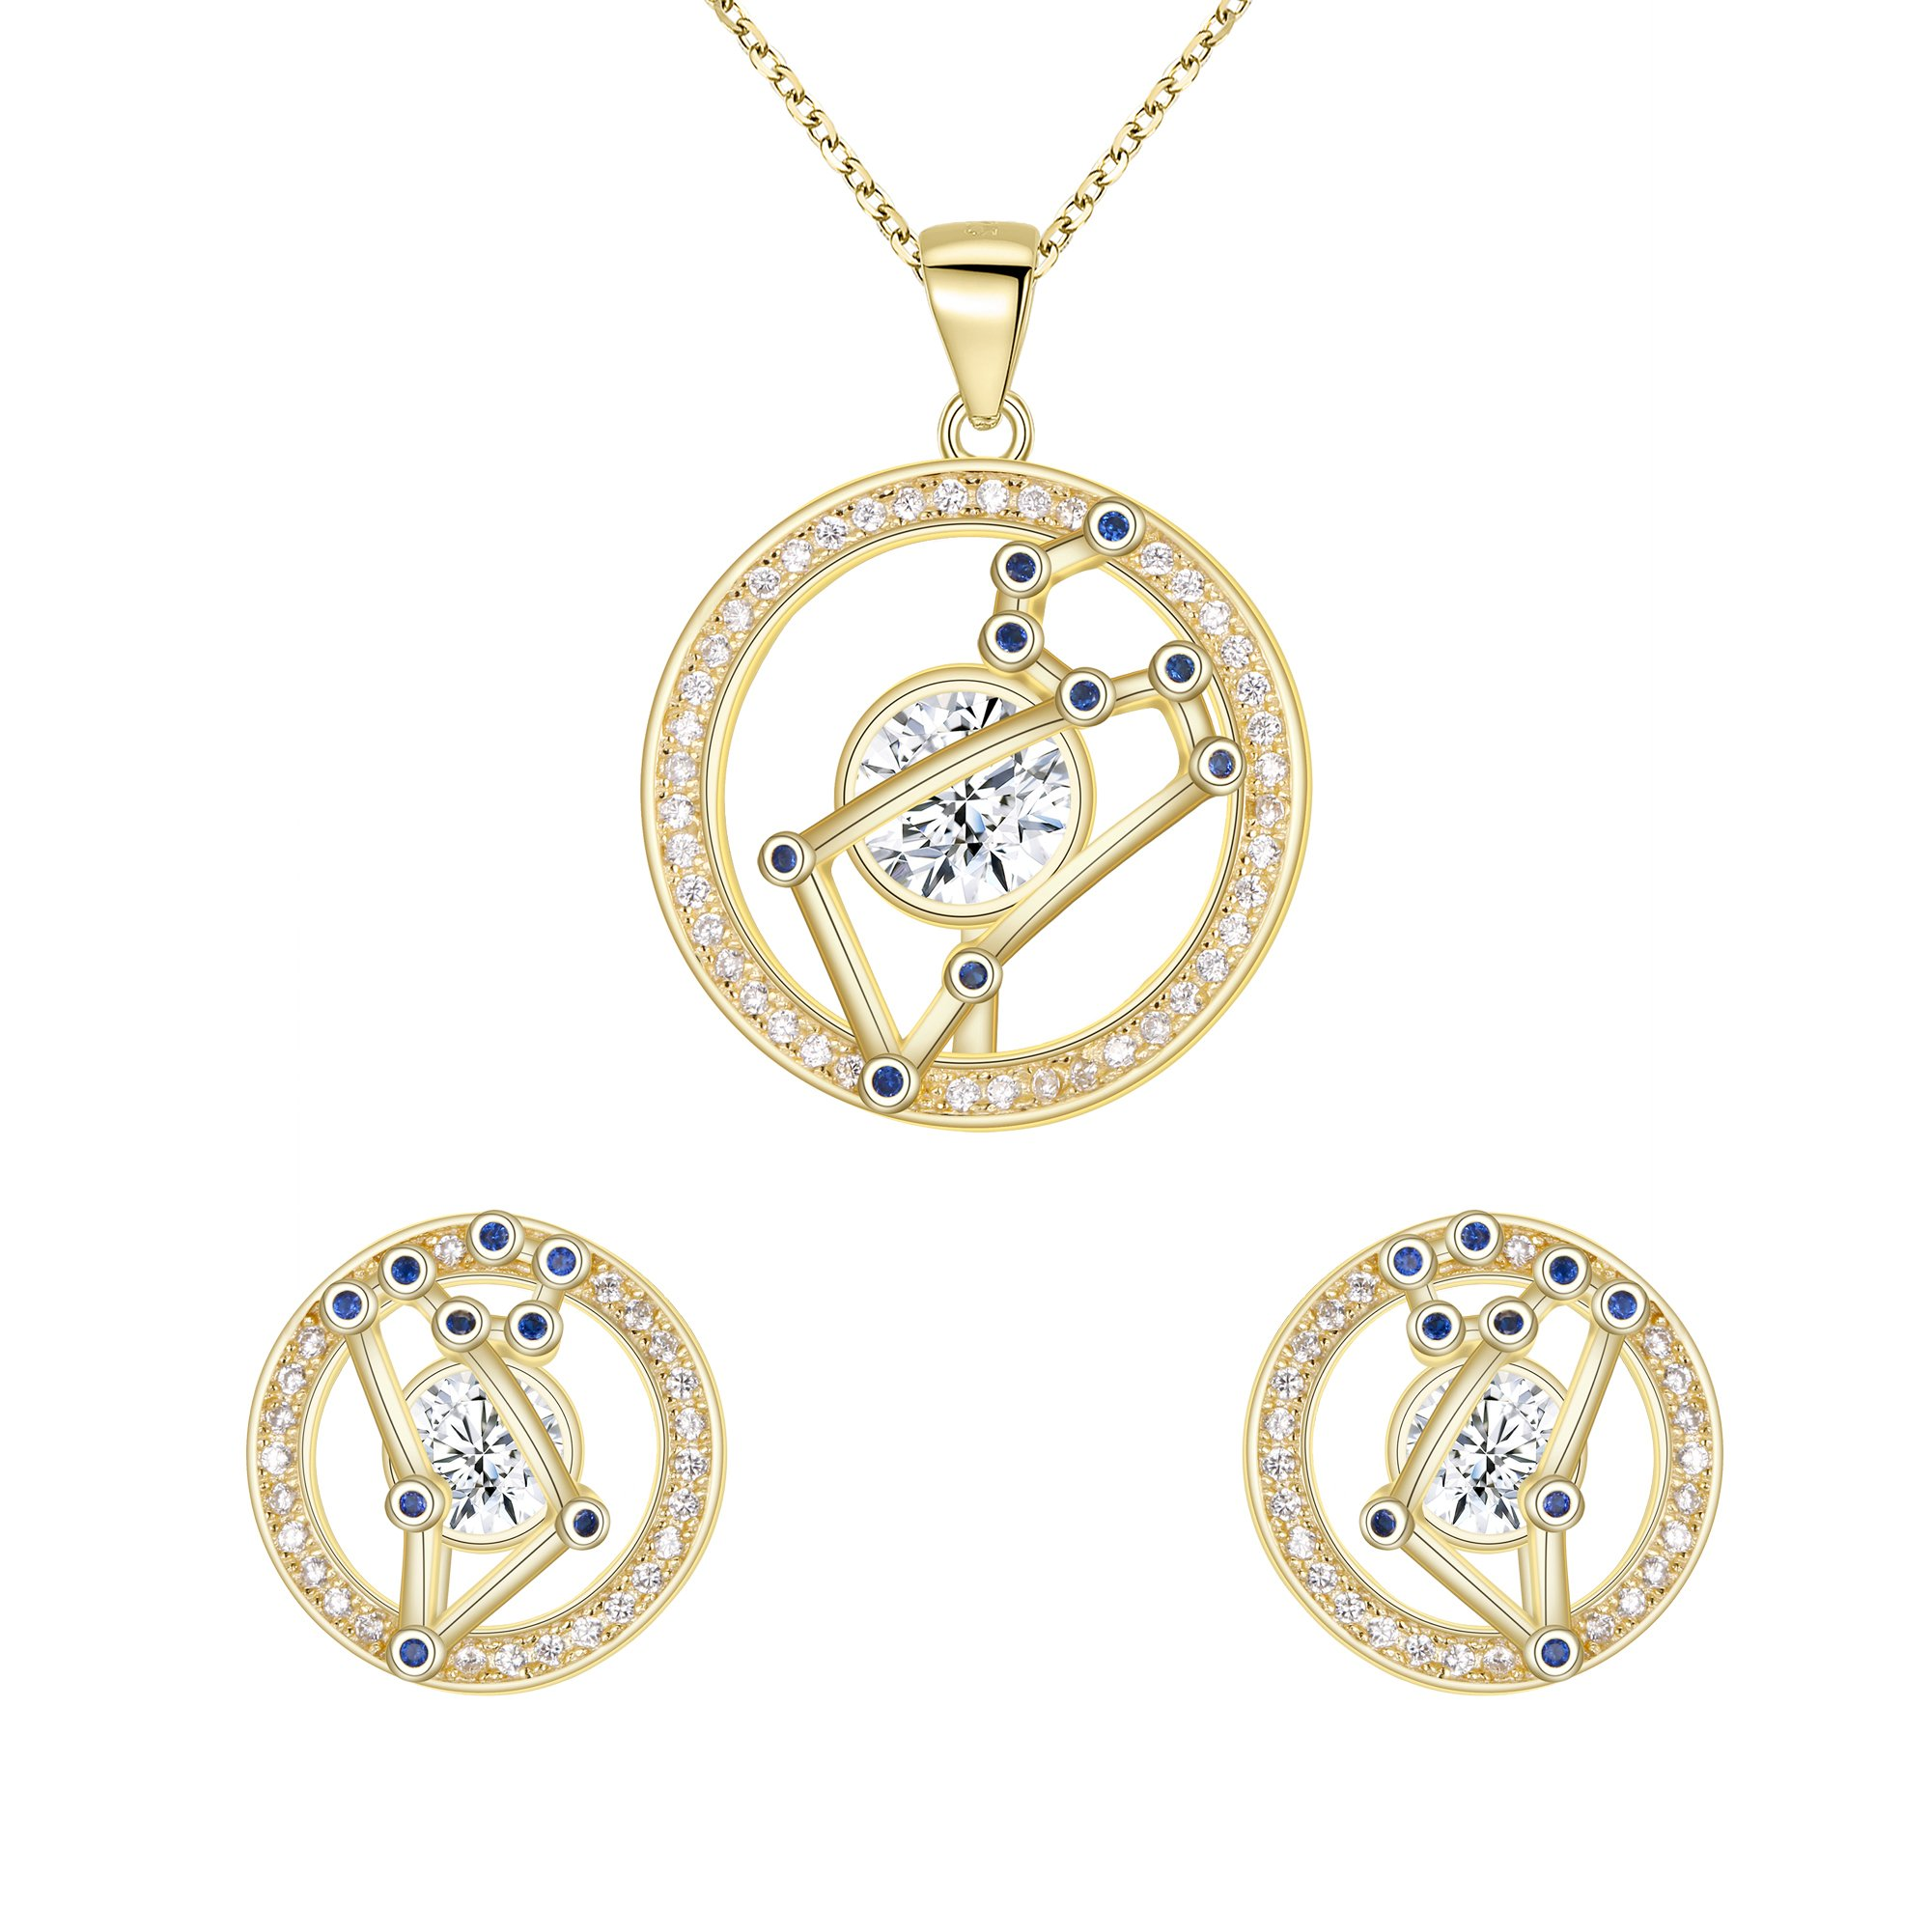 FANZE Leo-925 sterling silver Horoscope Zodiac 12 Constellation CZ Pendant Necklace Dangle Earrings Sets Golden Birthday Gift GoldPlated 18''+ 1.7'' by FANZE